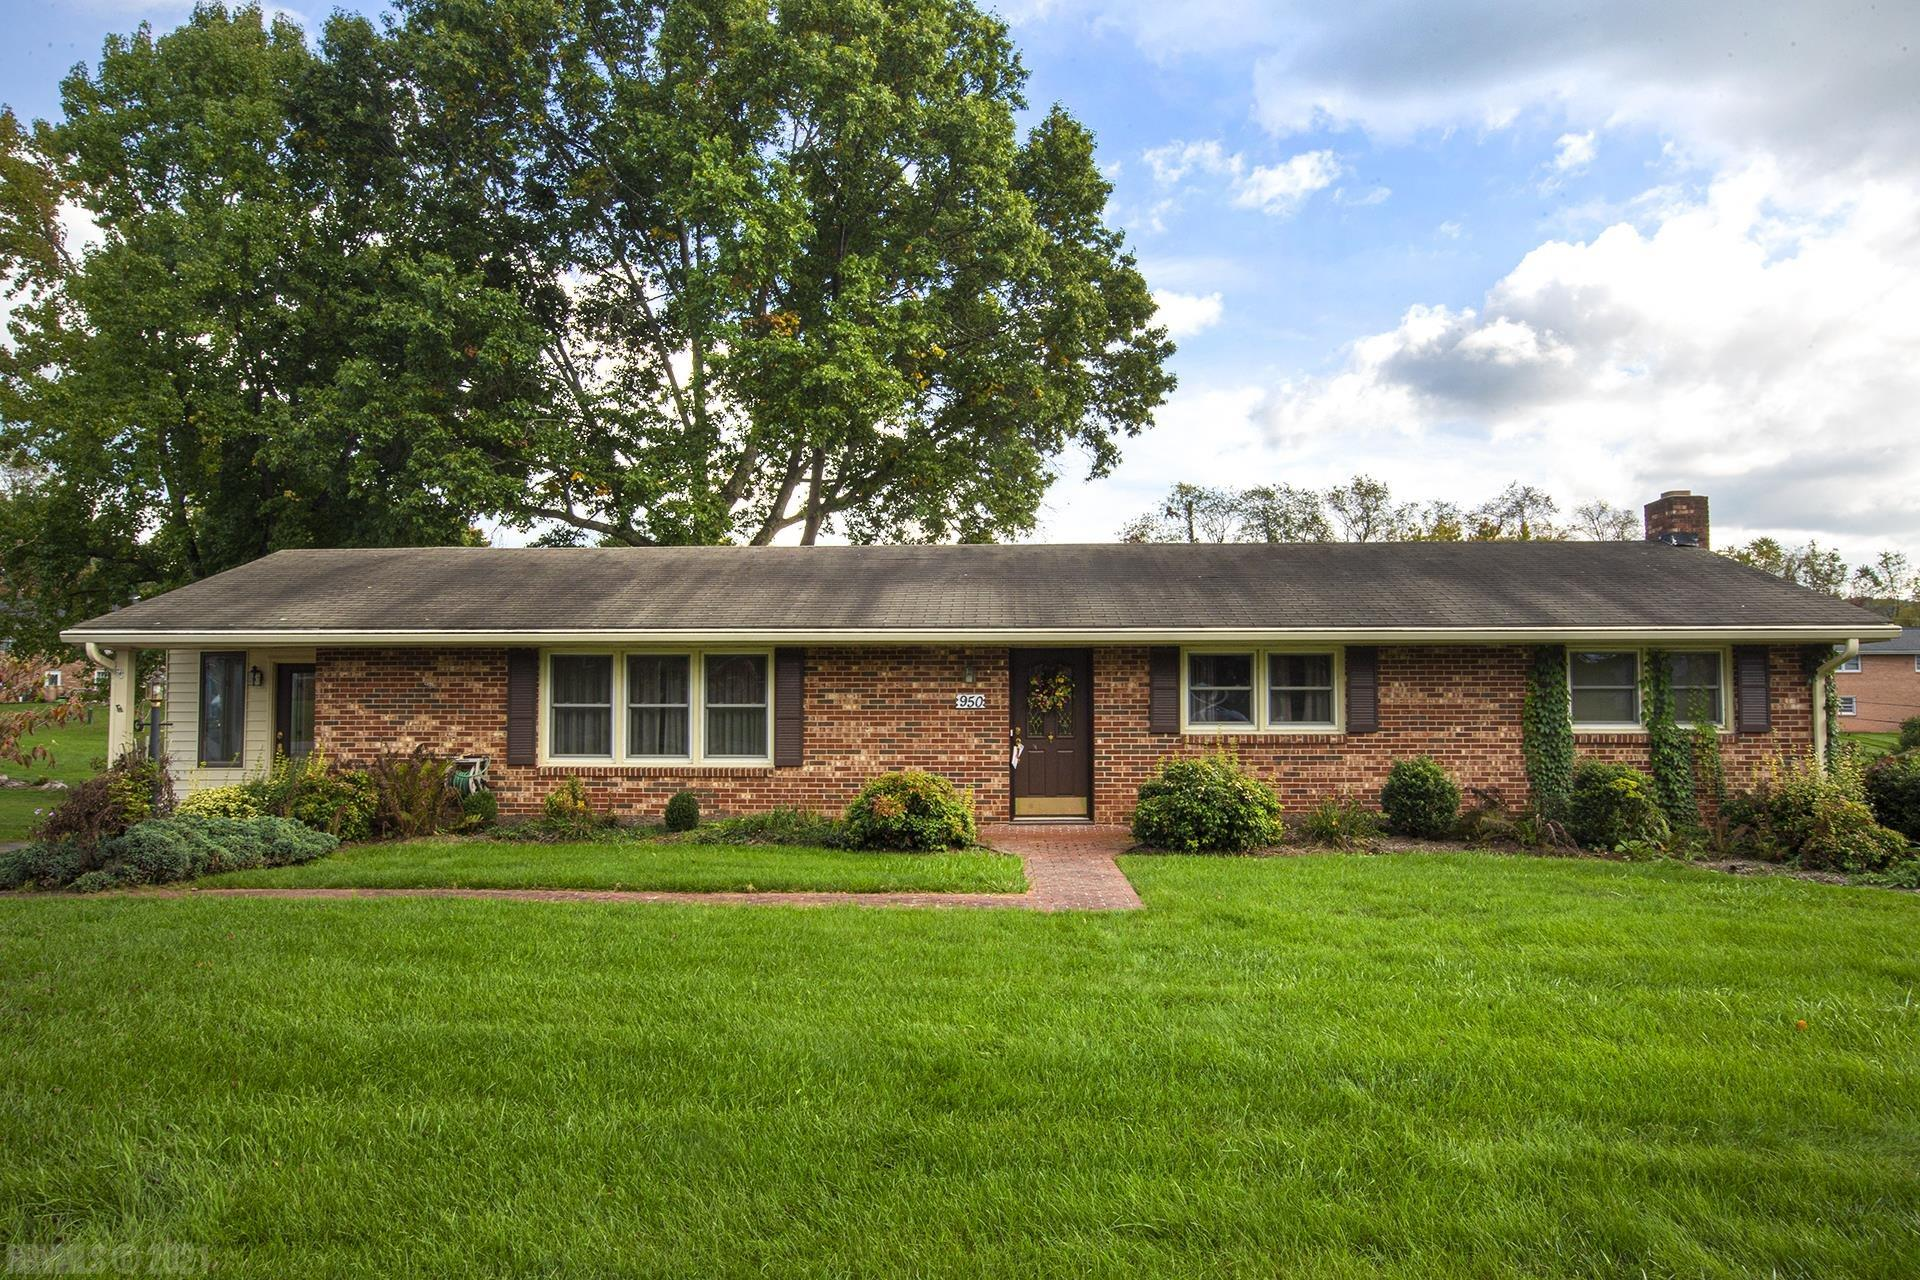 Well cared for and move-in ready.  Wonderful established neighborhood.  Nice lot.  Hardwood floors. Heat pump. Partially finished basement. This one won't be available long.